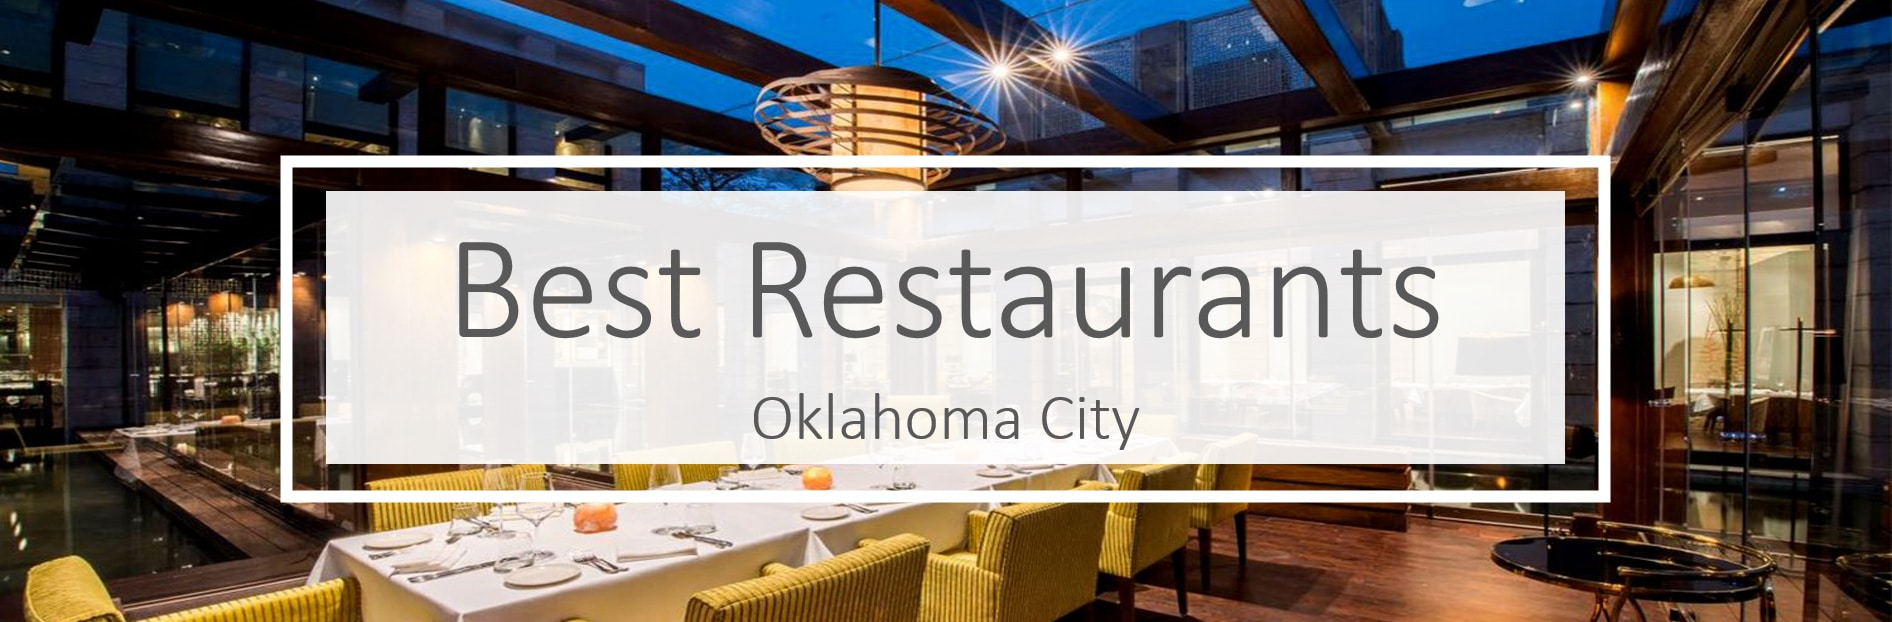 Best Restaurant in Oklahoma City